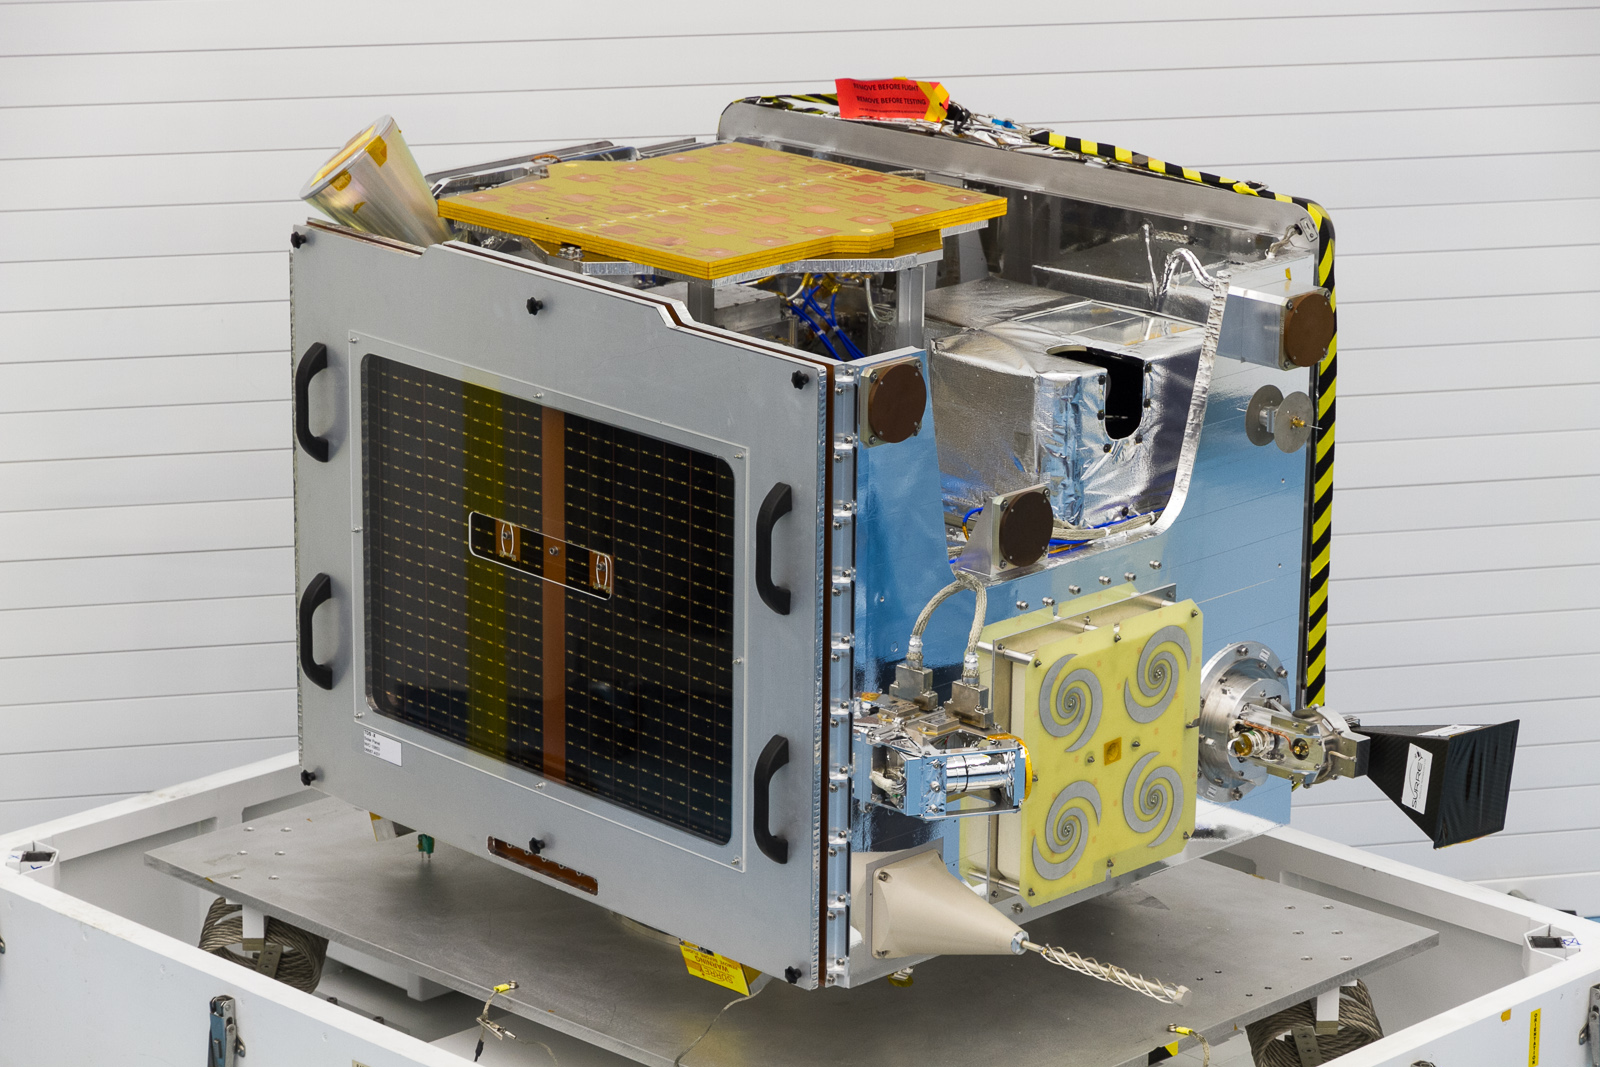 TechDemoSat-1 satellite during assembly at SSTL, 2013. Credit SSTL.